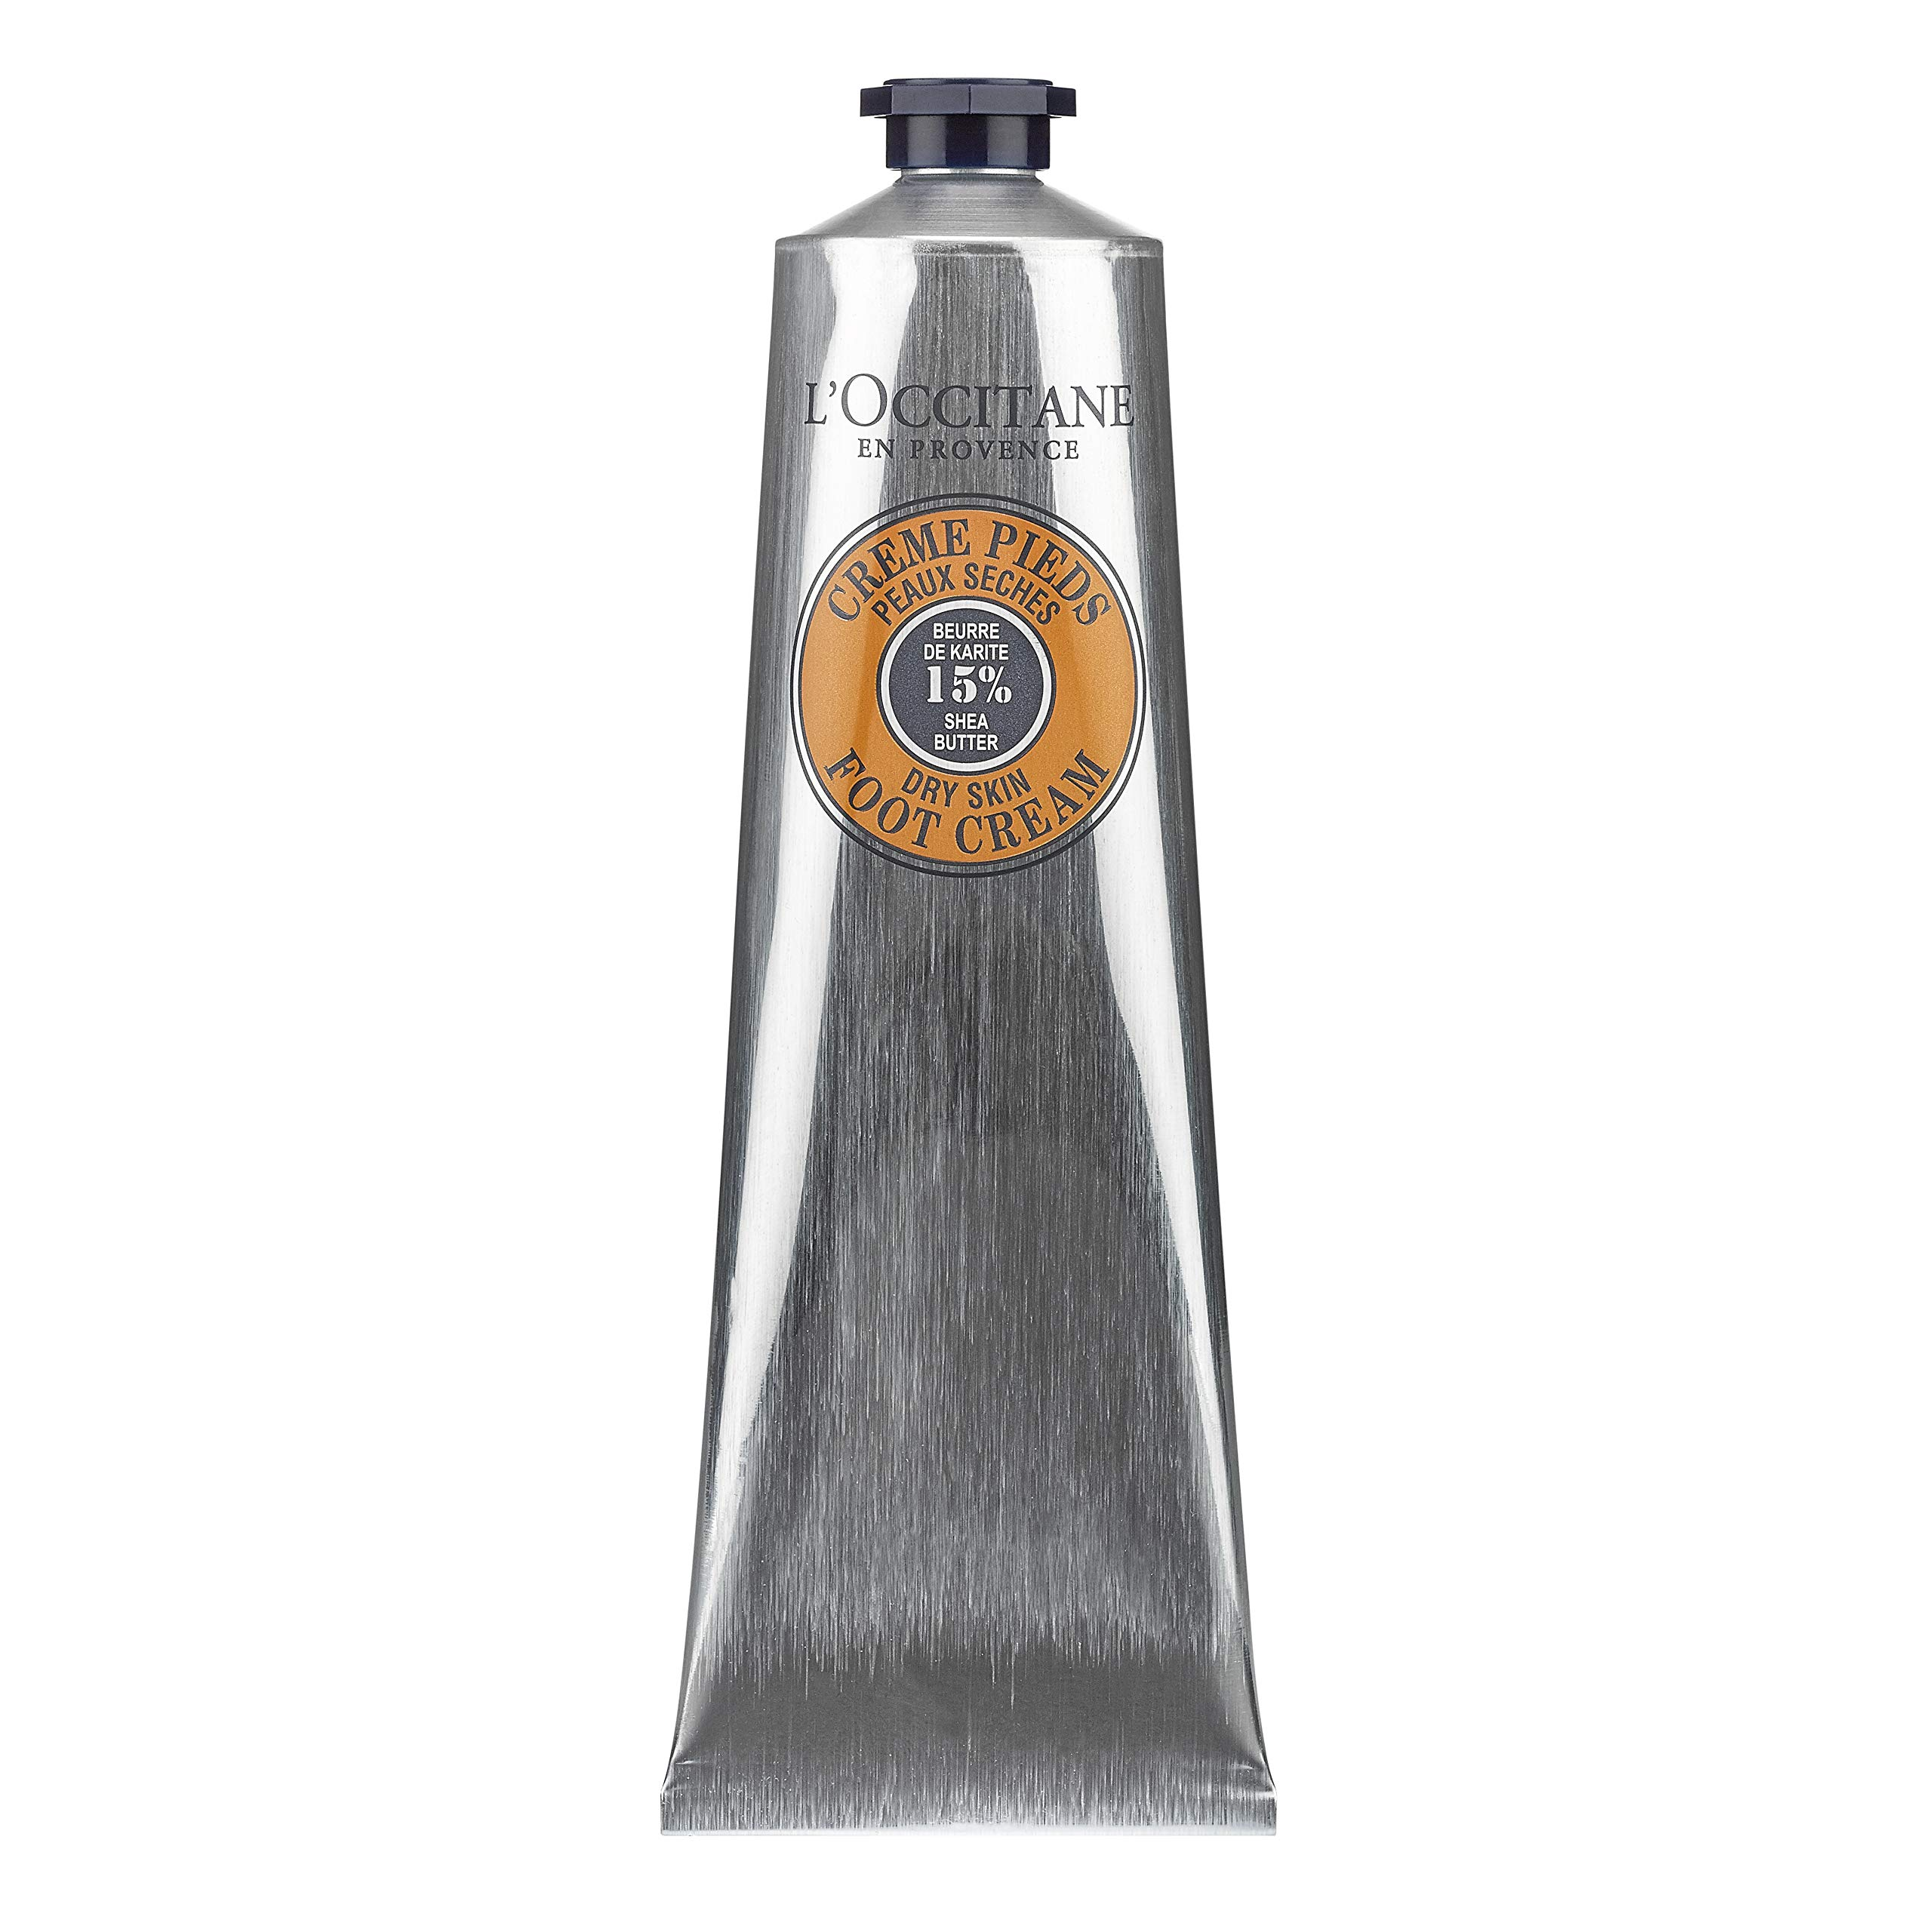 L'Occitane 15% Shea Butter Foot Cream Enriched with Lavender & Arnica, 5.2 oz.